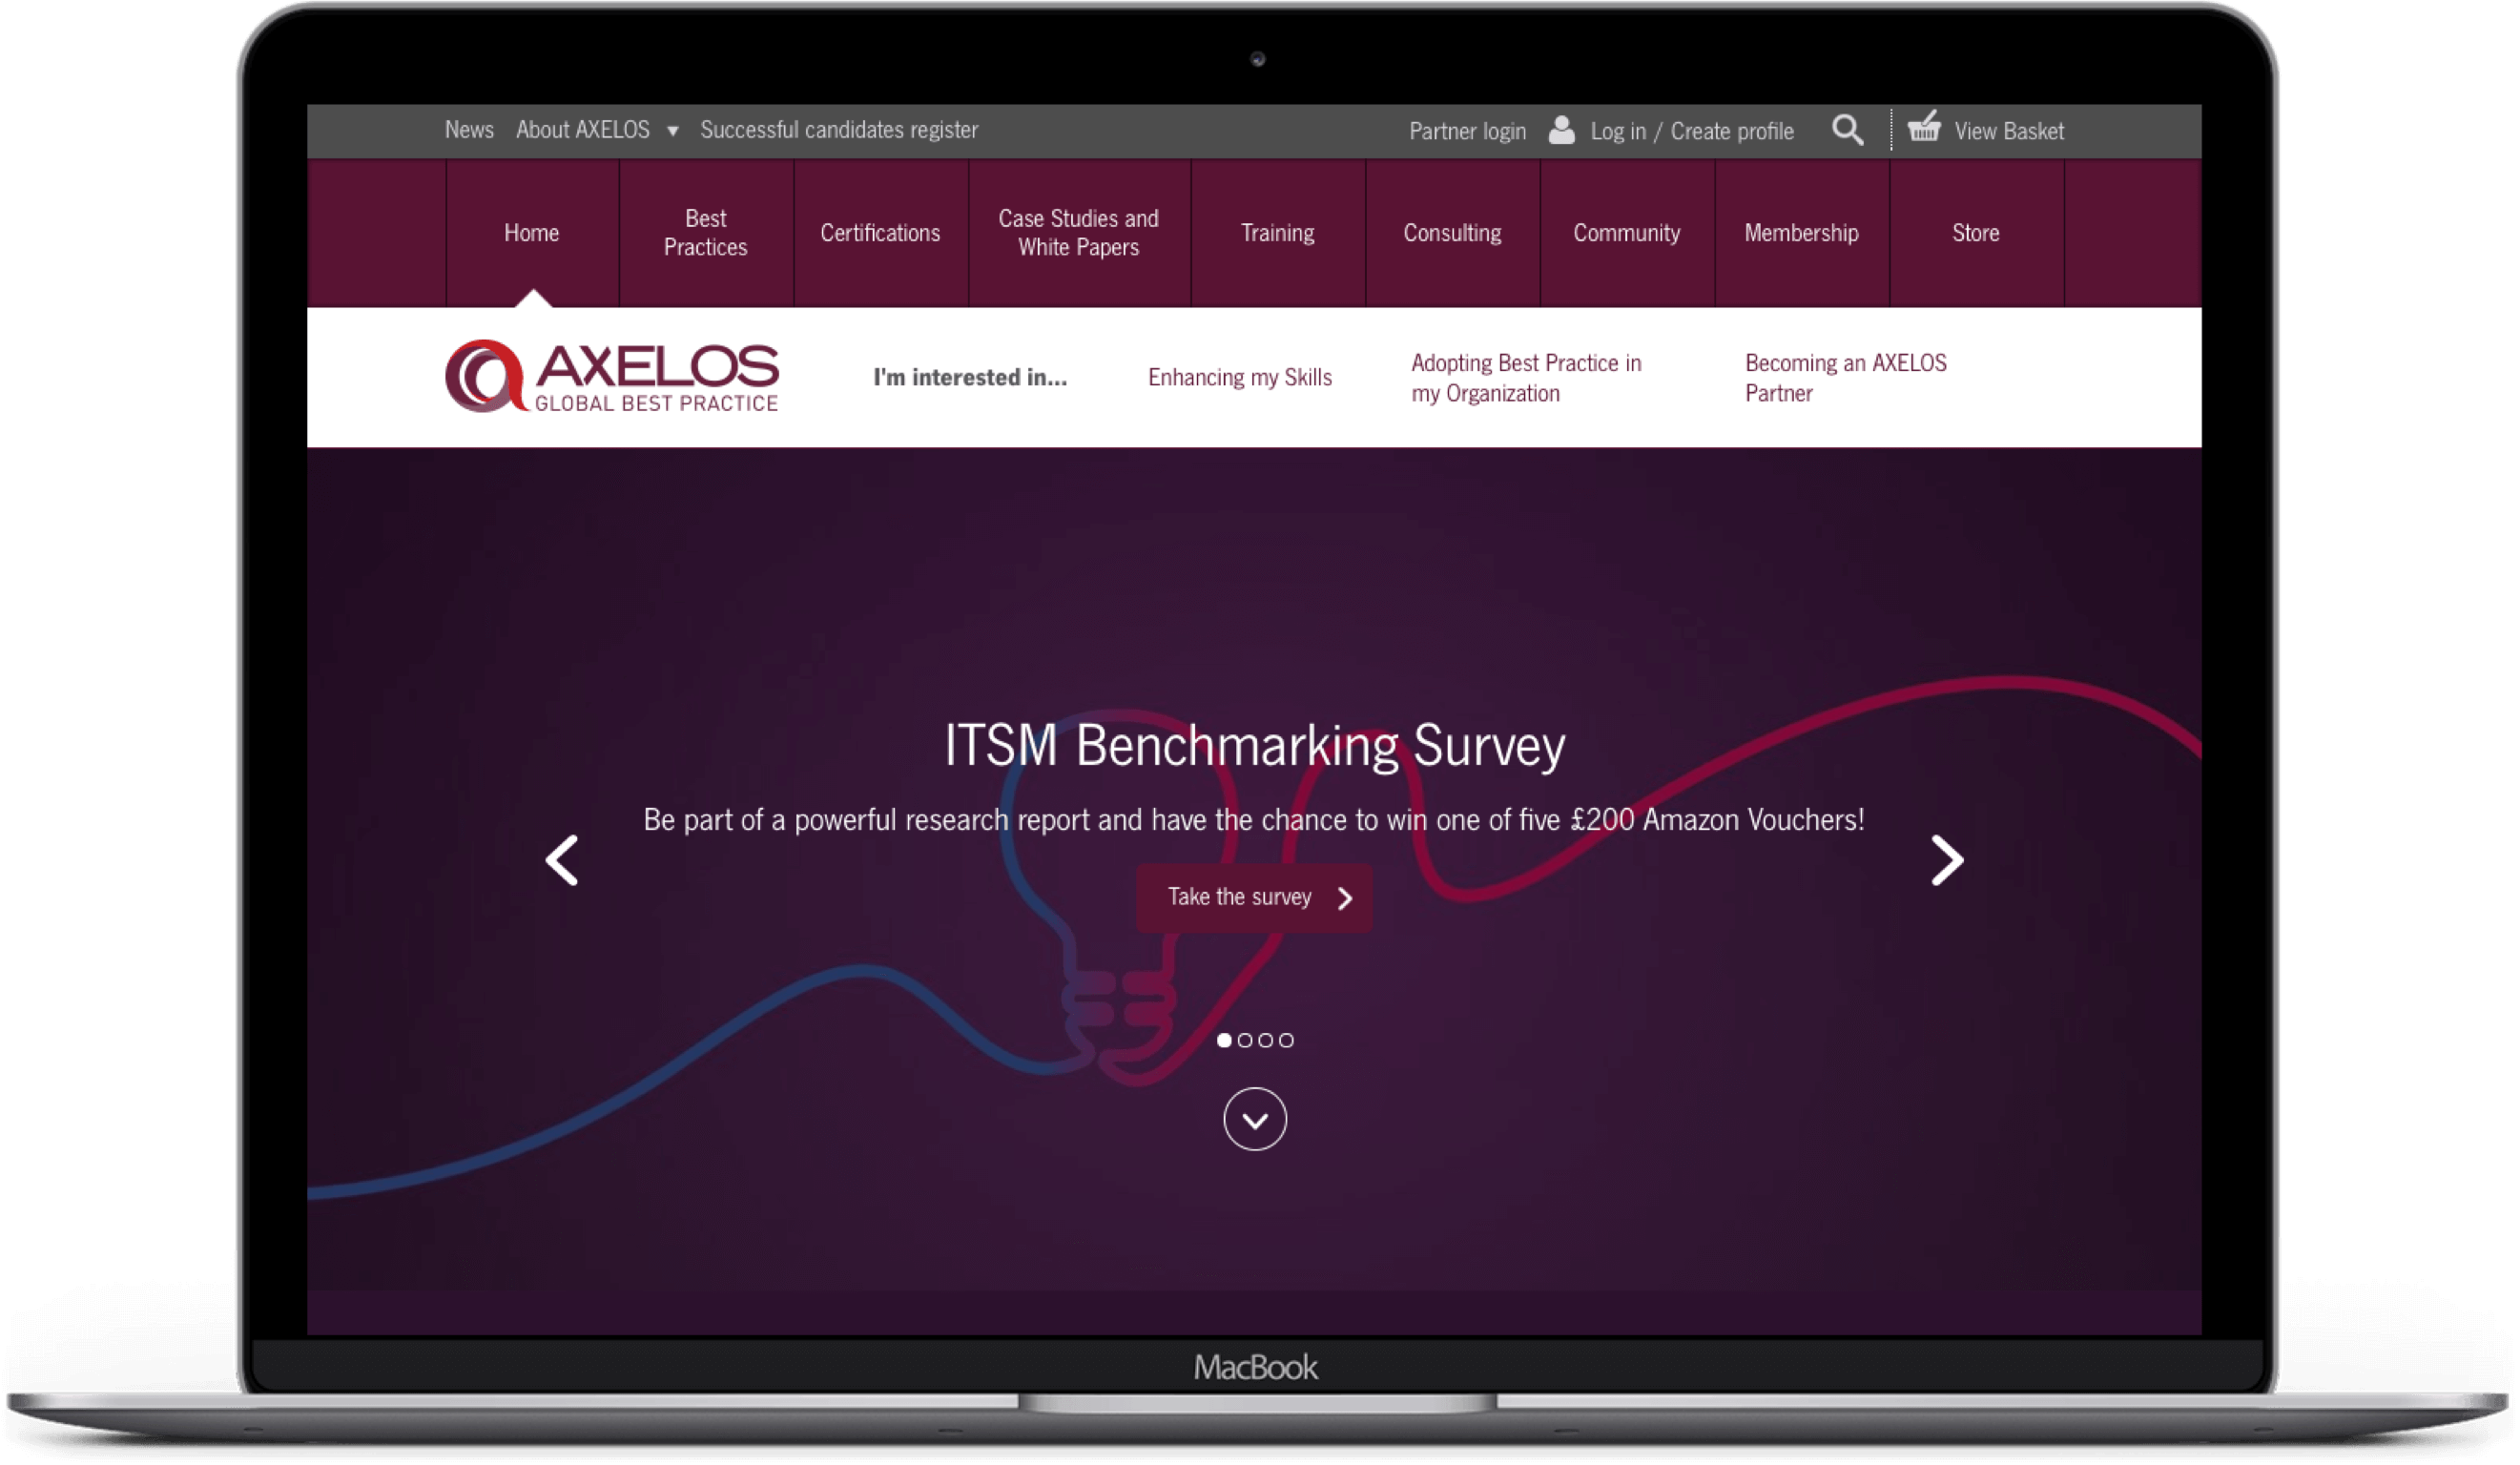 AXELOS Website